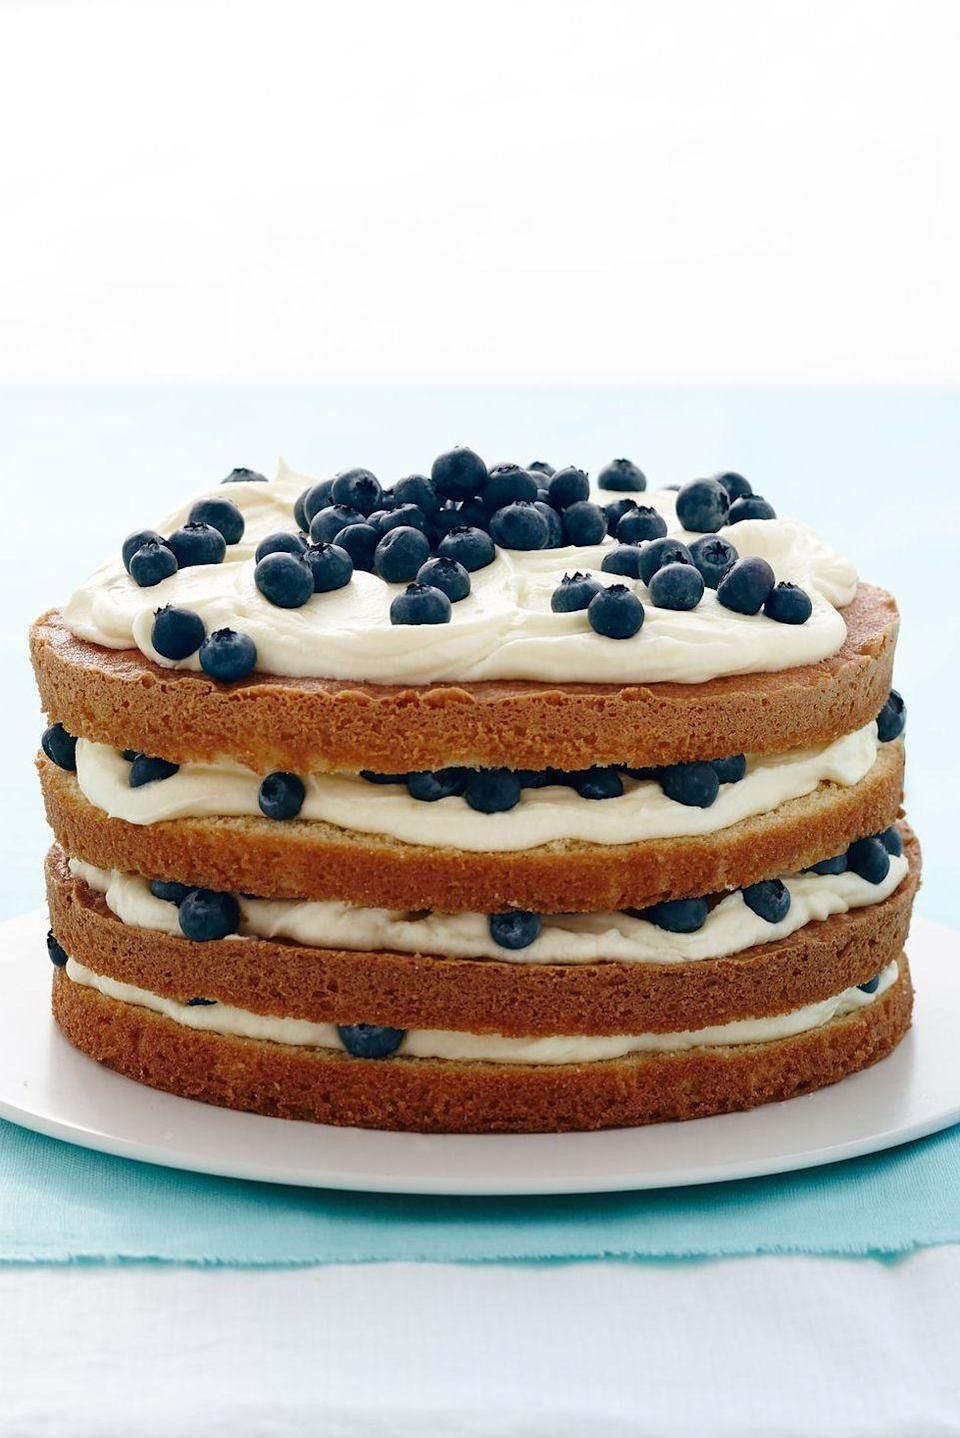 "<p>Ree Drummond's recipe leaves the sides of this cake unfrosted, so your guests know exactly what creamy and fluffy goodness they're in for.</p><p><em><a href=""https://www.goodhousekeeping.com/food-recipes/a15612/lemon-blueberry-layer-cake-recipe-wdy0414/"" rel=""nofollow noopener"" target=""_blank"" data-ylk=""slk:Get the recipe for Lemon Blueberry Layer Cake »"" class=""link rapid-noclick-resp"">Get the recipe for Lemon Blueberry Layer Cake »</a></em></p>"